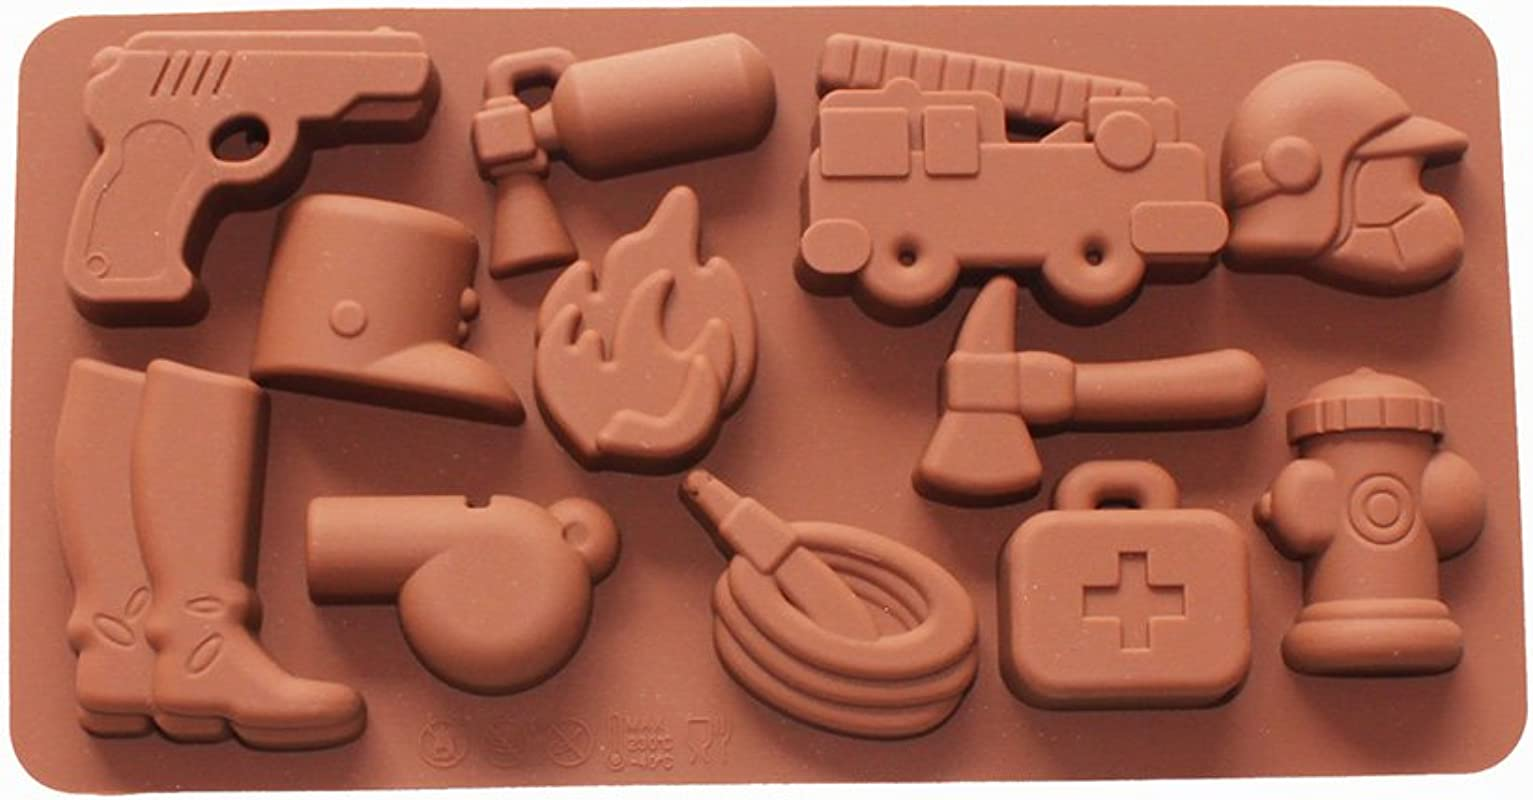 X Haibei Fire Fighting Equipment Shape Silicone Chocolate Candy Jello Soap Crayon Mold